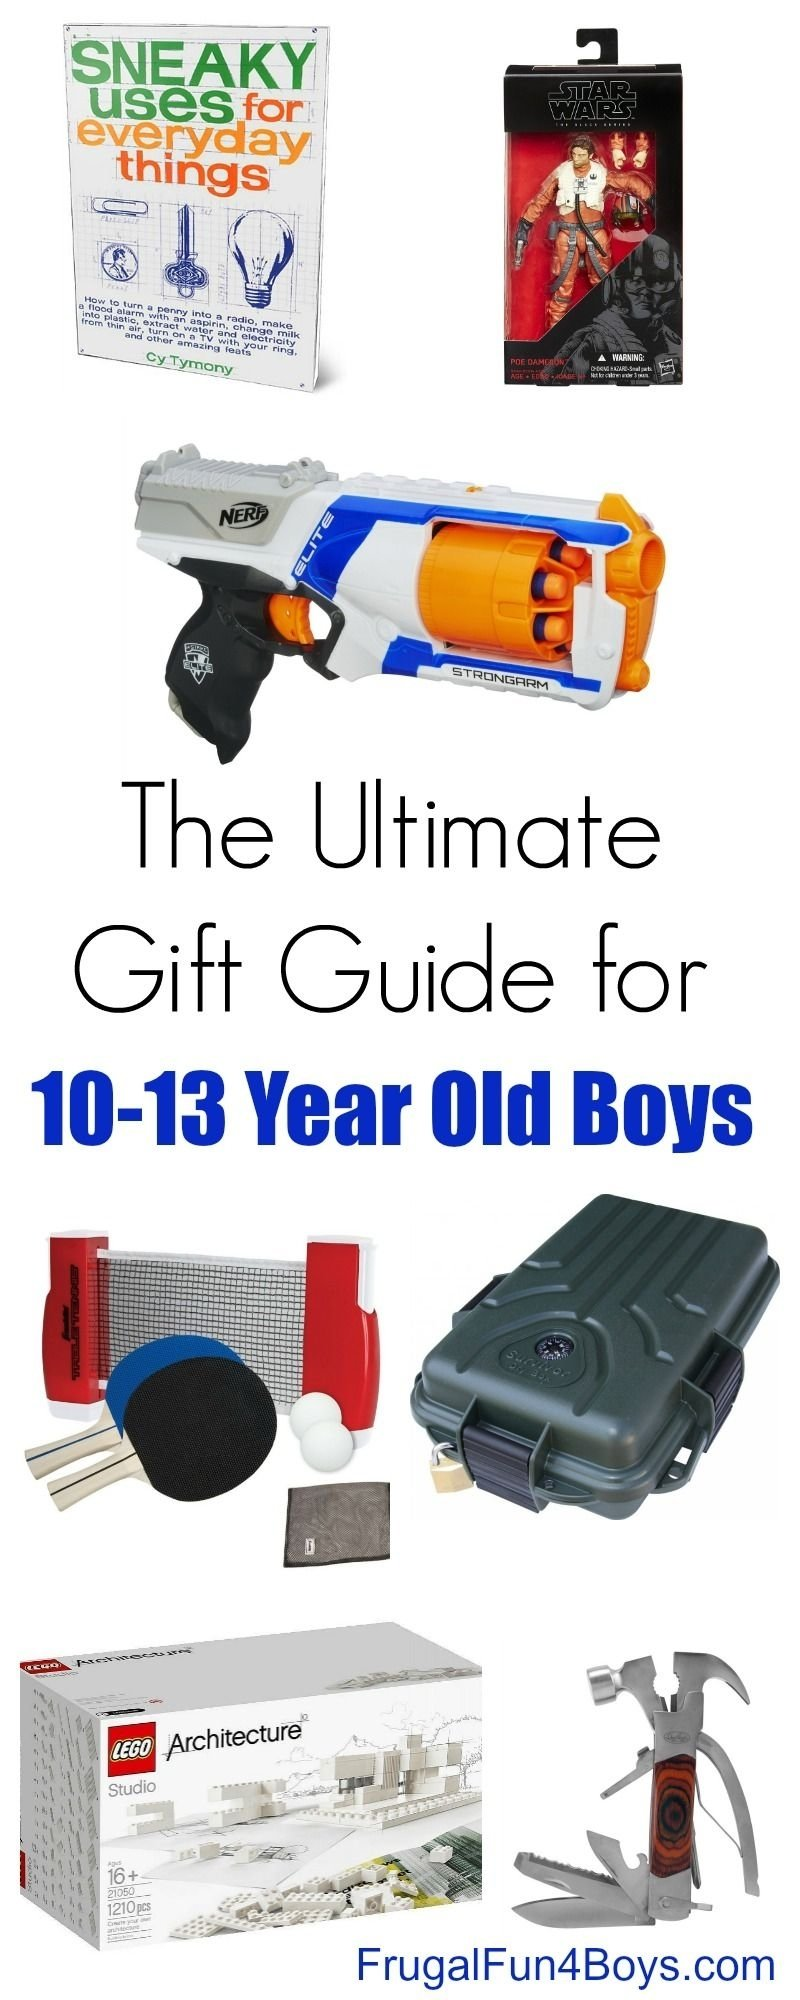 10 Attractive Gift Ideas For 13 Year Old Boy gift ideas for 10 to 13 year old boys gaming gift and books 9 2020